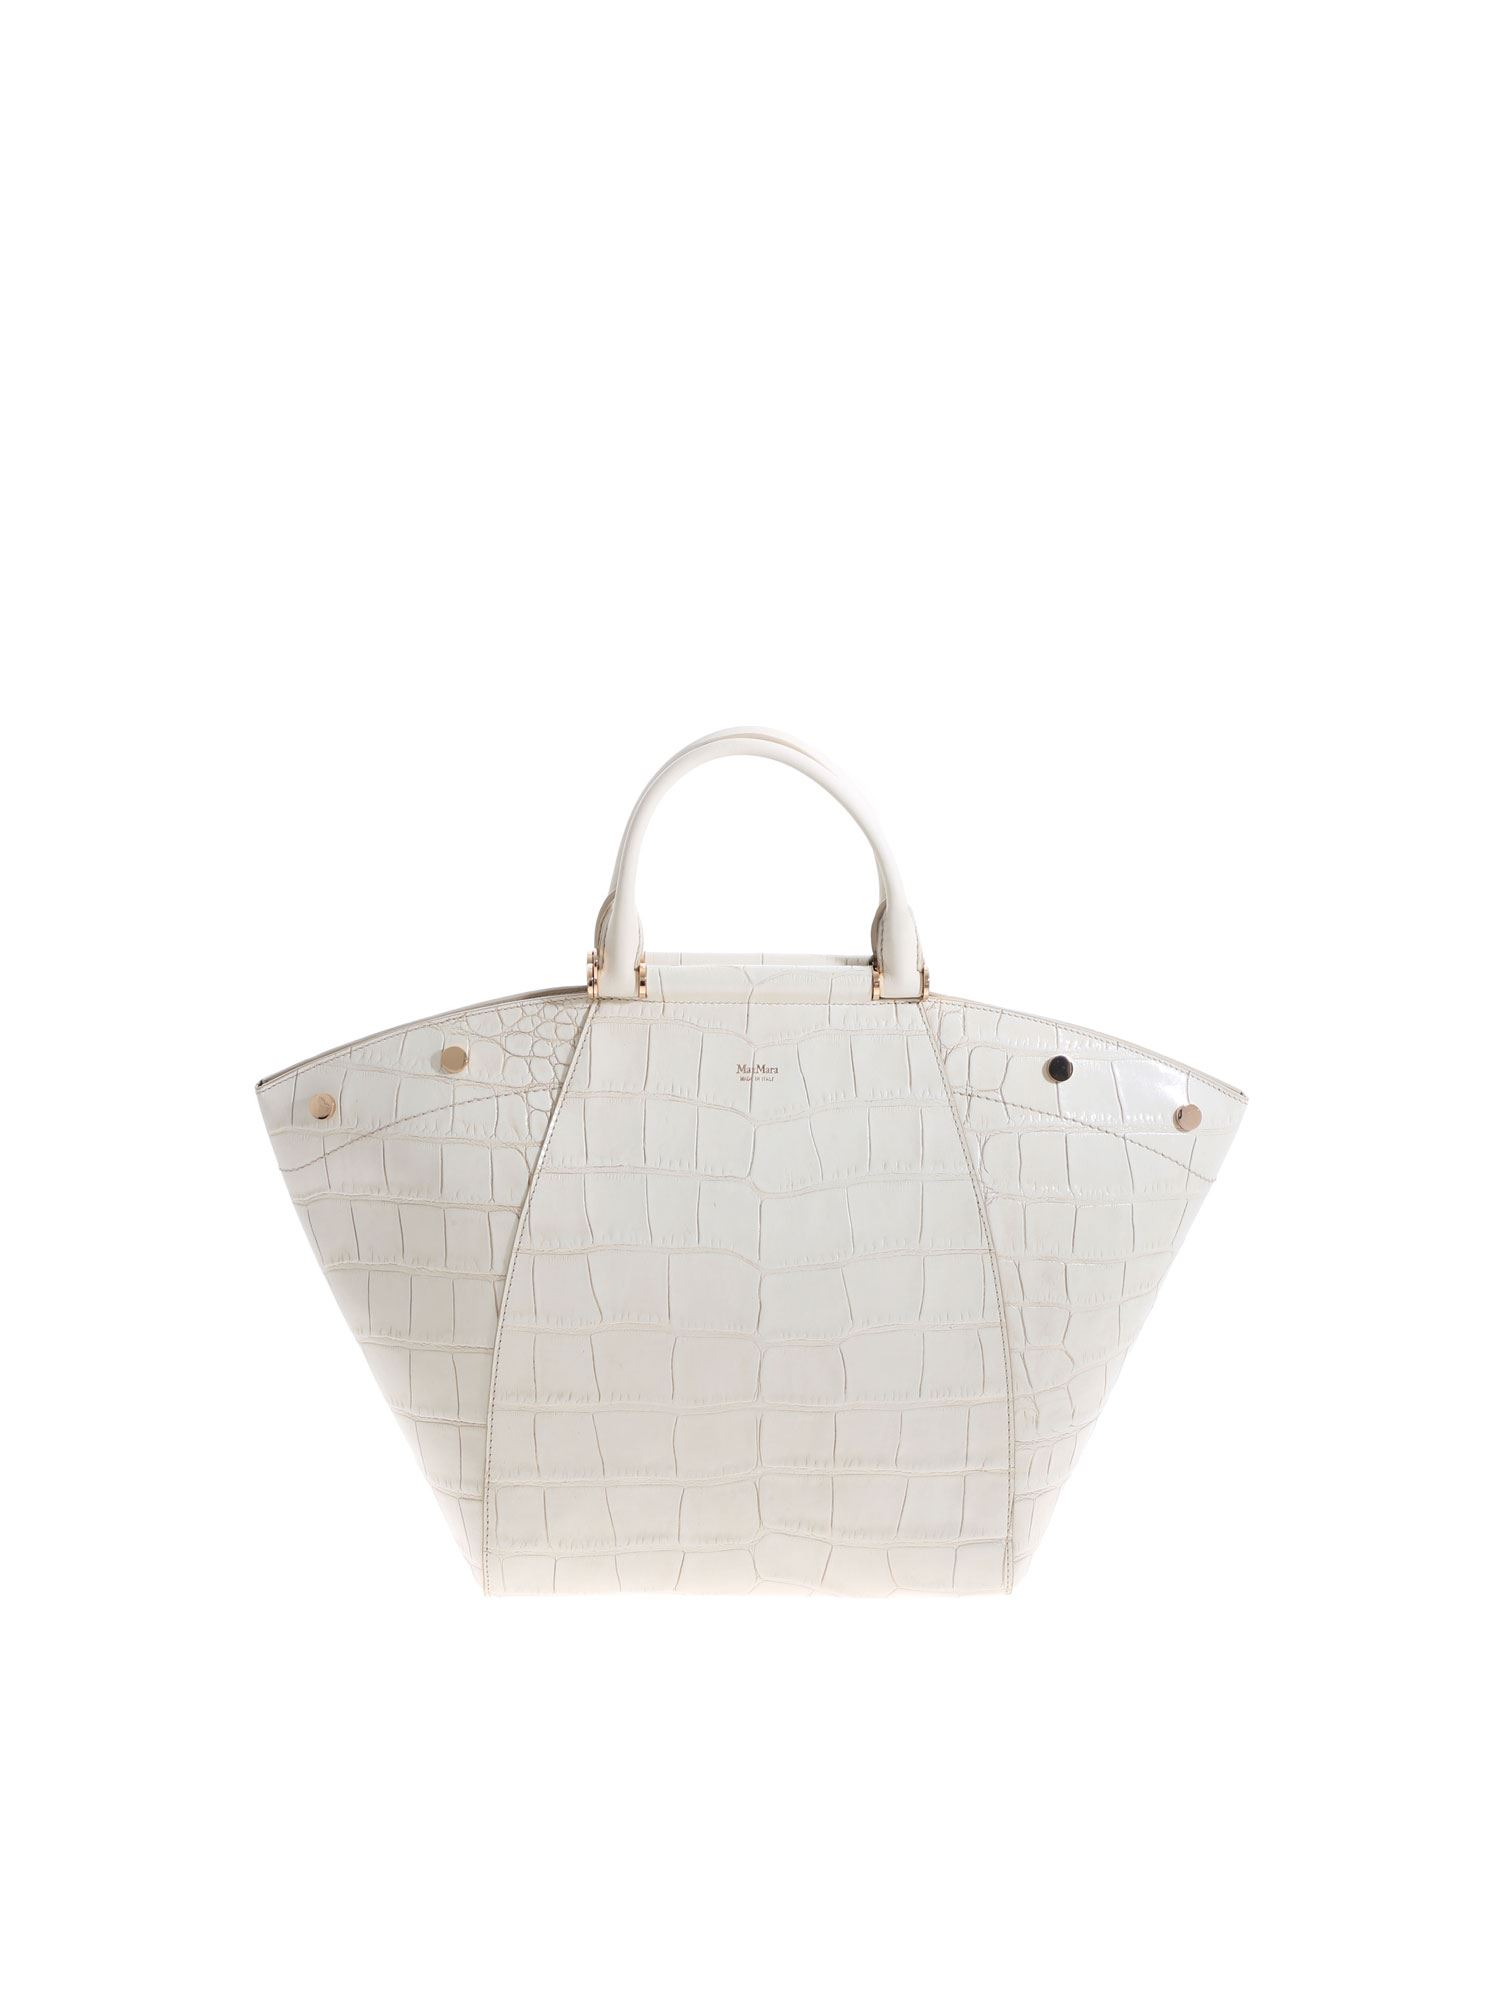 Max Mara ANITAM2 HANDBAG IN IVORY COLOR